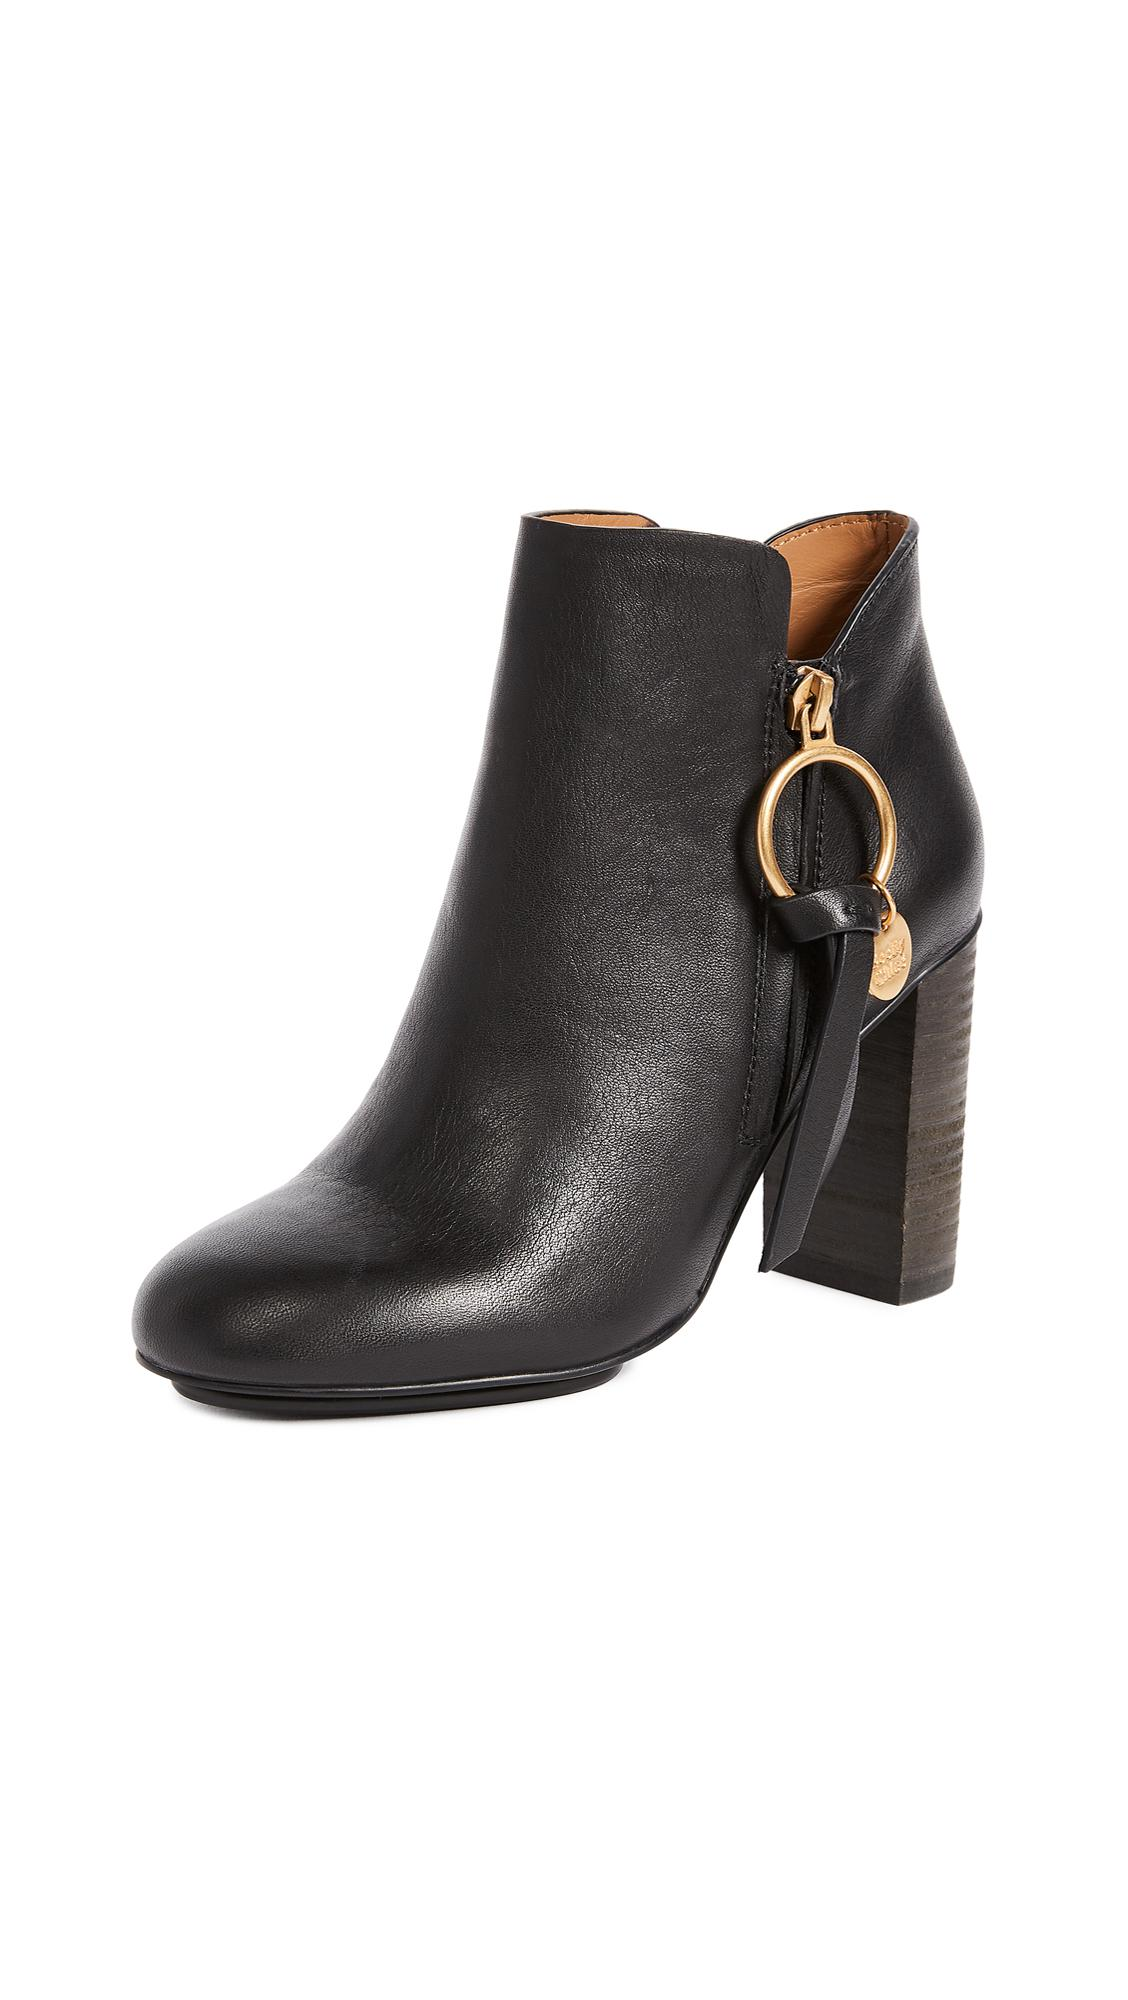 See By Chloé Leather Louise Booties in Nero (Black)